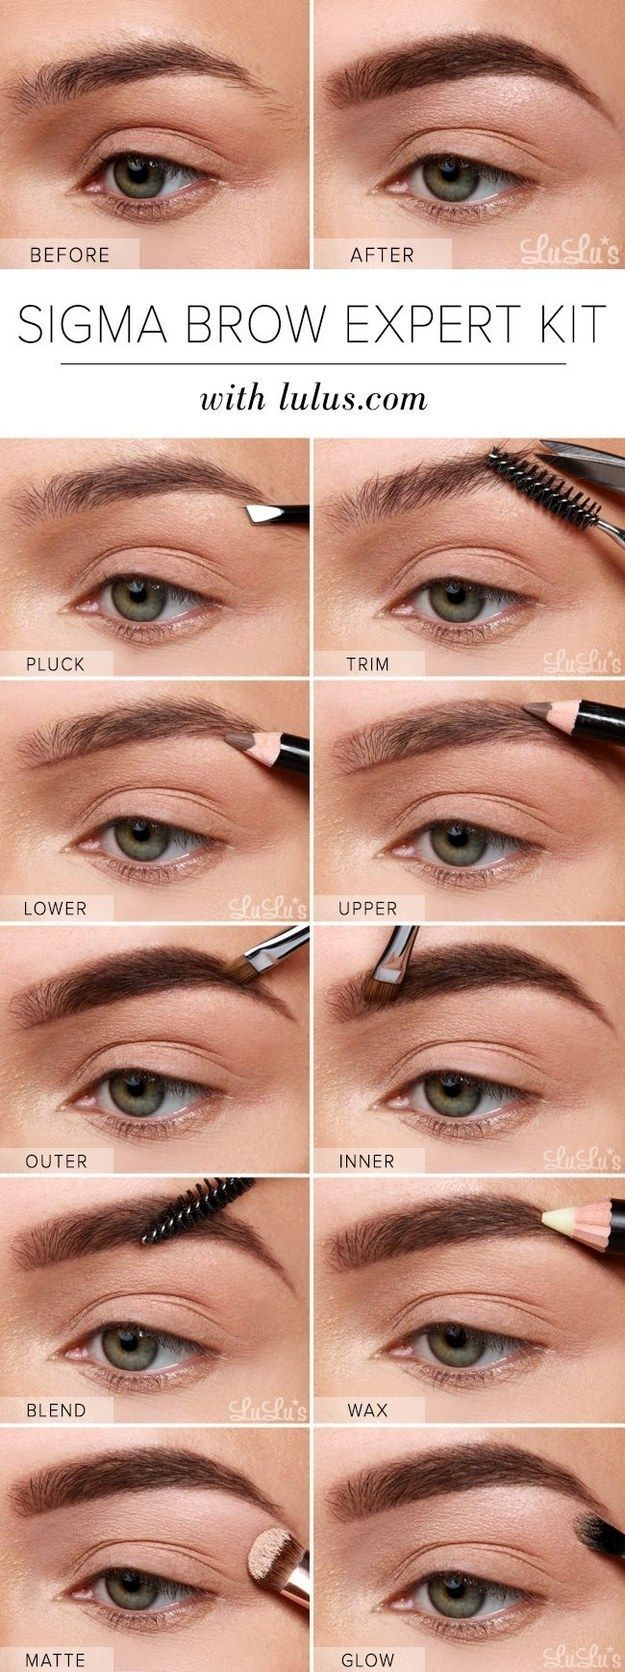 10 Tips Thatll Make Your Eyebrows Strike Fear Into The Hearts Of